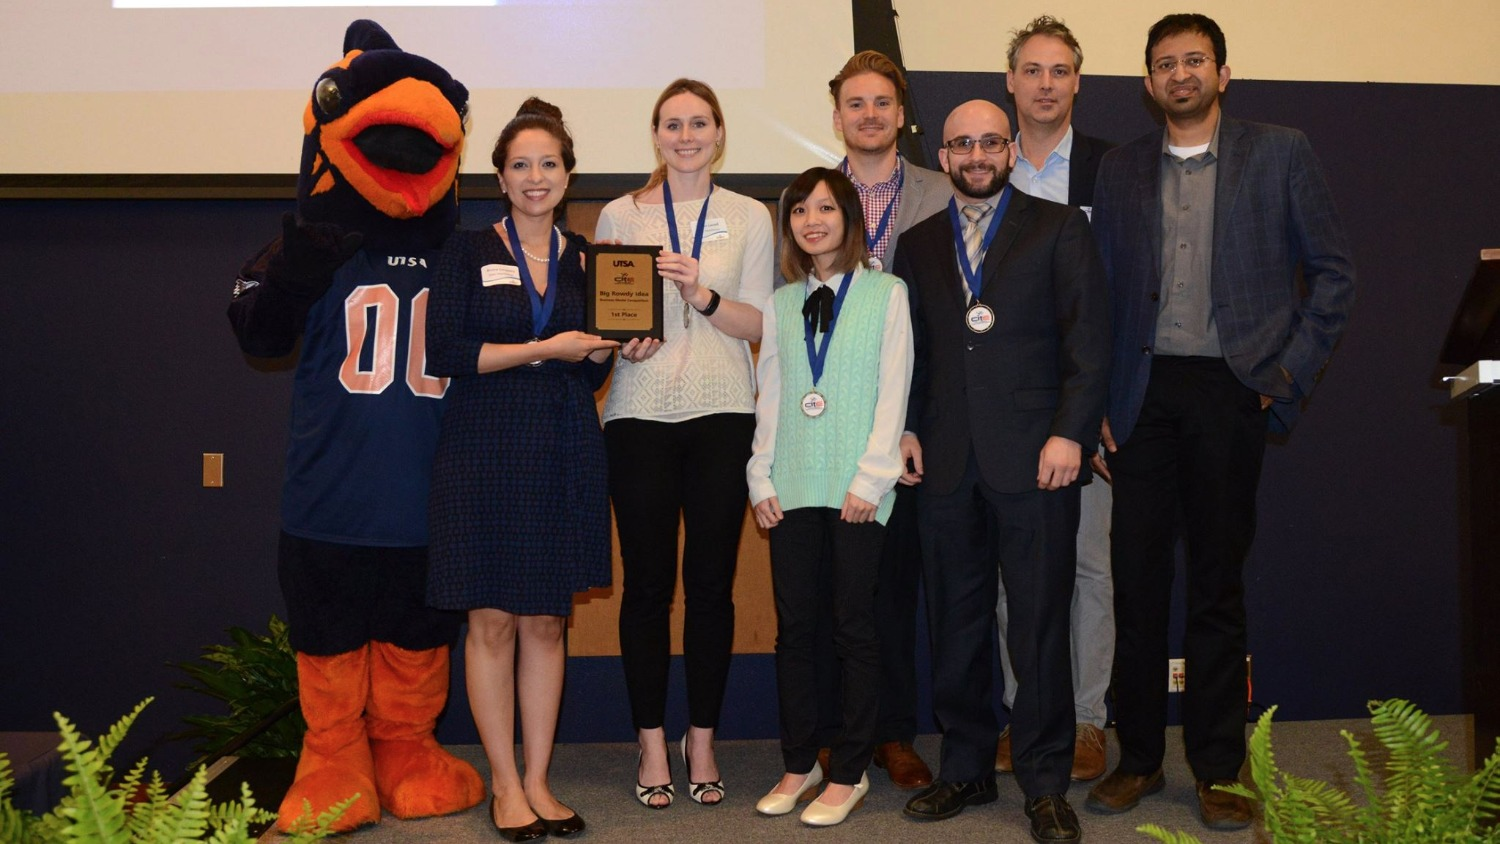 UTSA CITE Business Model Competition